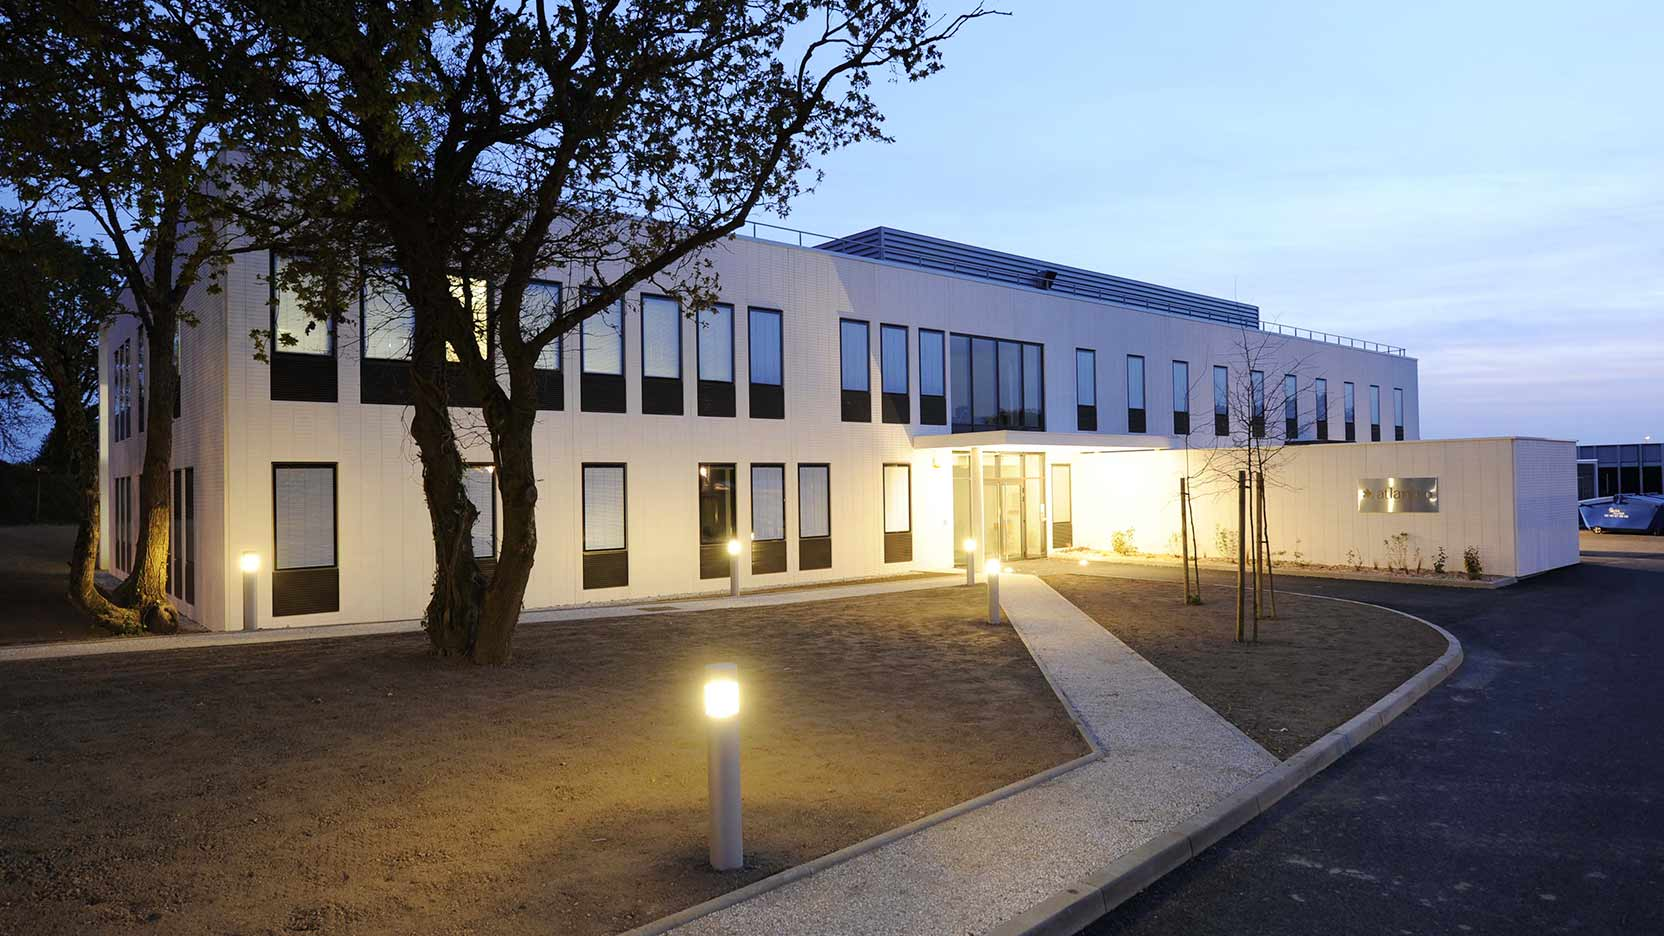 1,000 m² in laboratories and 800 m² in offices in Saint Nazaire for Atlanbio